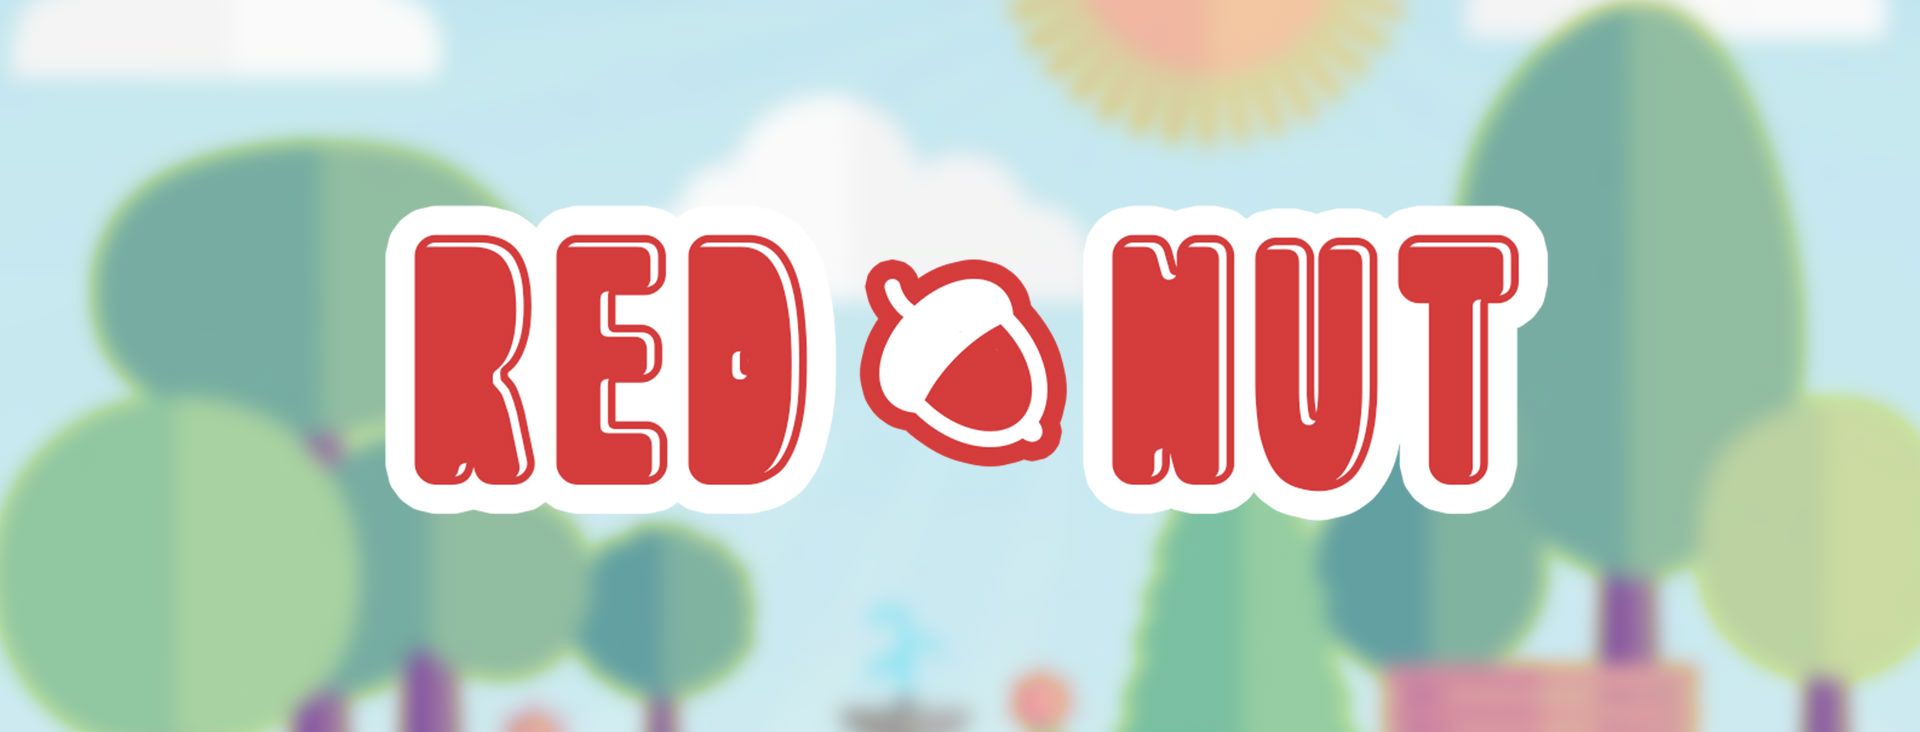 Red Nut